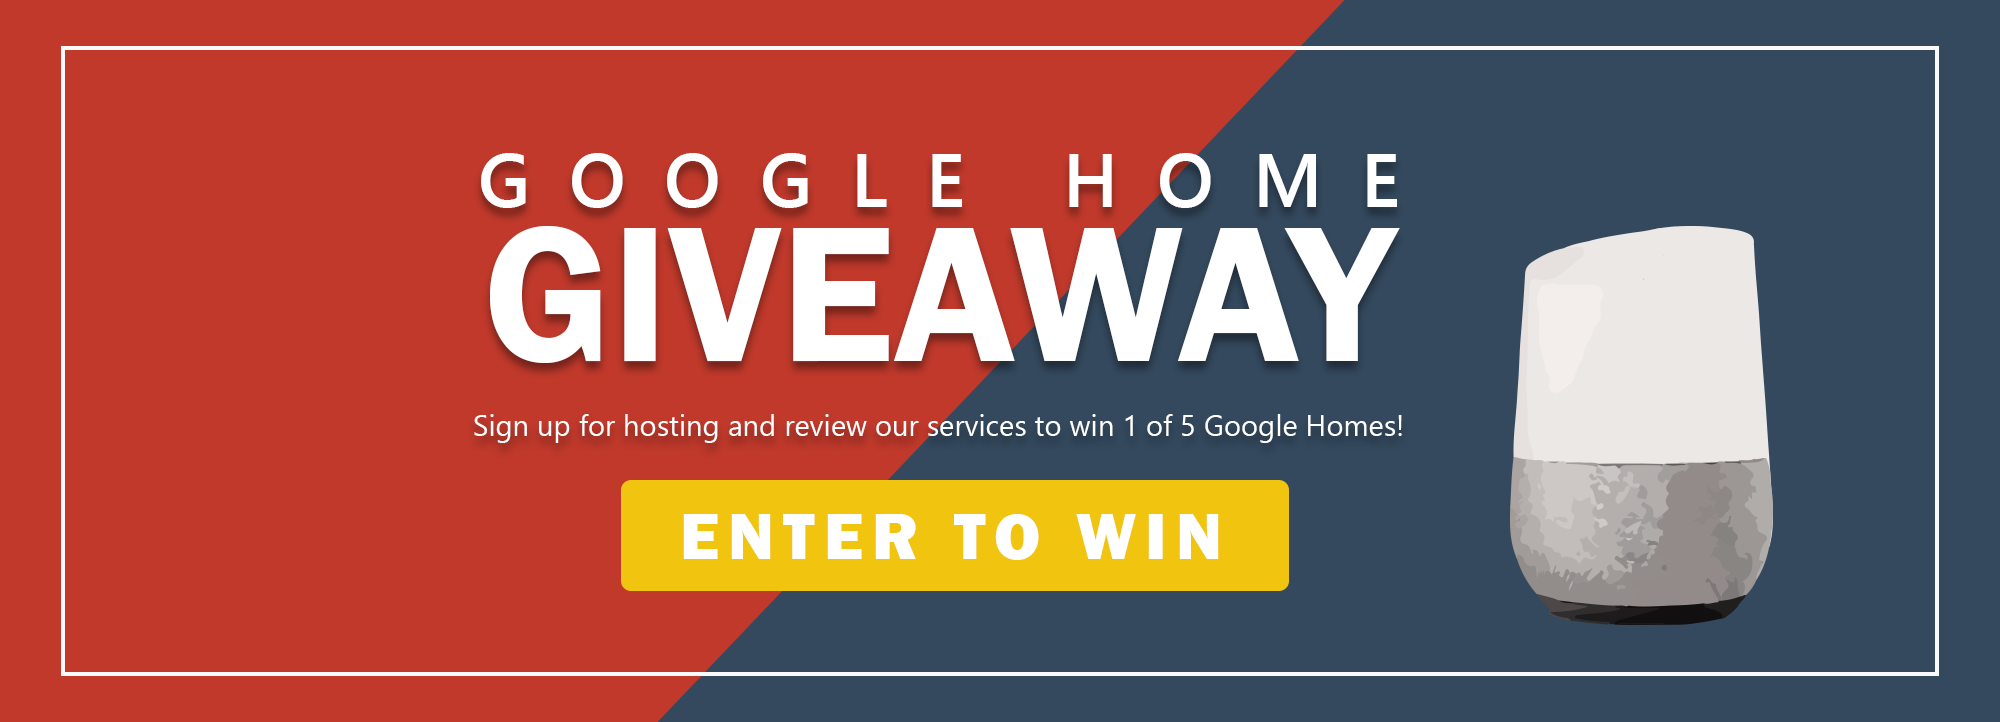 google home giveaway canadian web hosting blog website mock screen template 04 banner